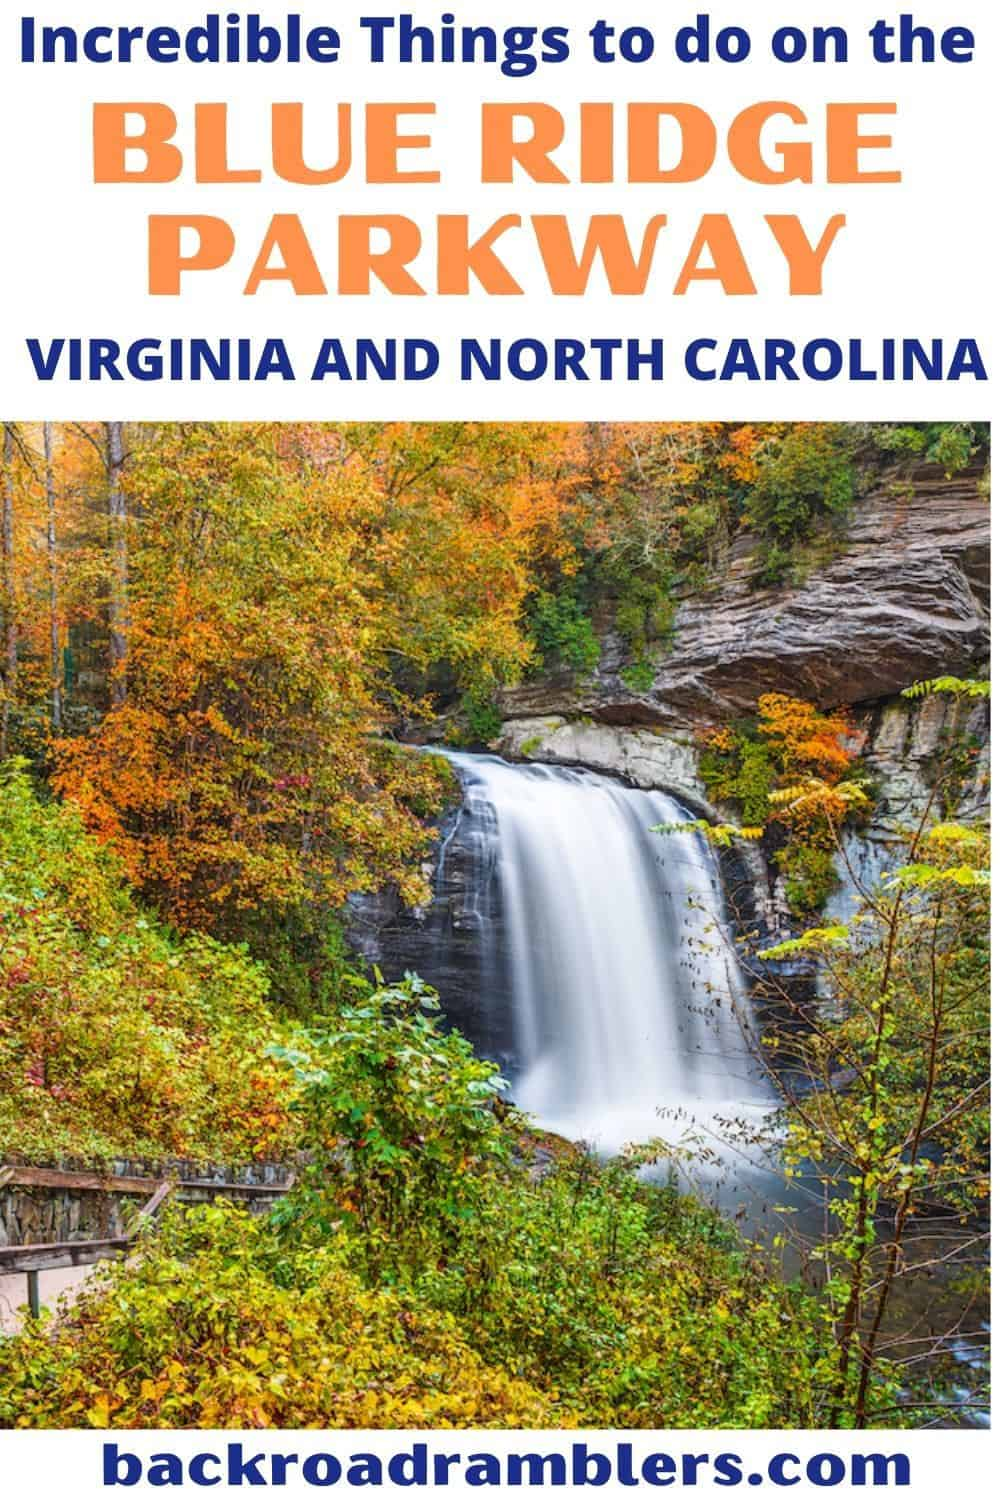 A view of Looking Glass Falls near the Blue Ridge Parkway in Pisgah National Forest, North Carolina. Text overlay: the best things to do on the Blue Ridge Parkway.